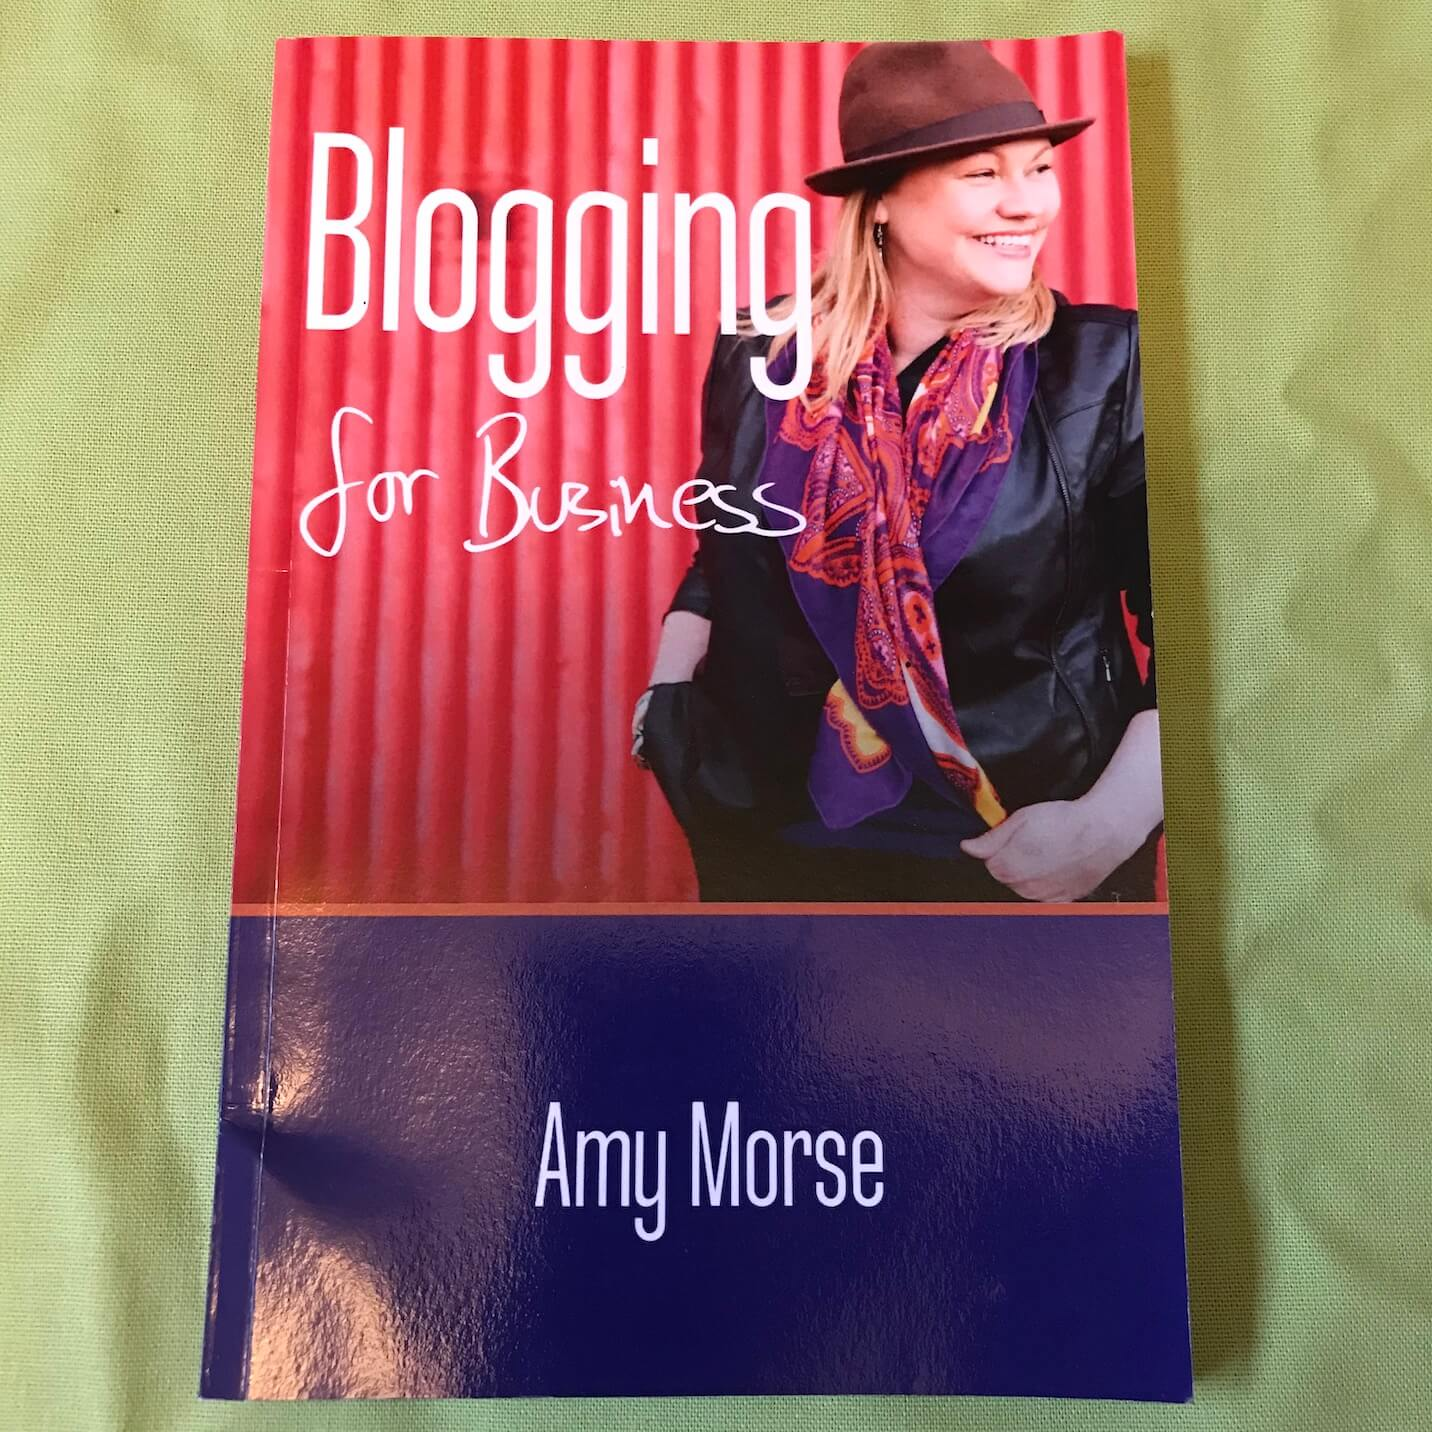 blogging for business by Amy Morse